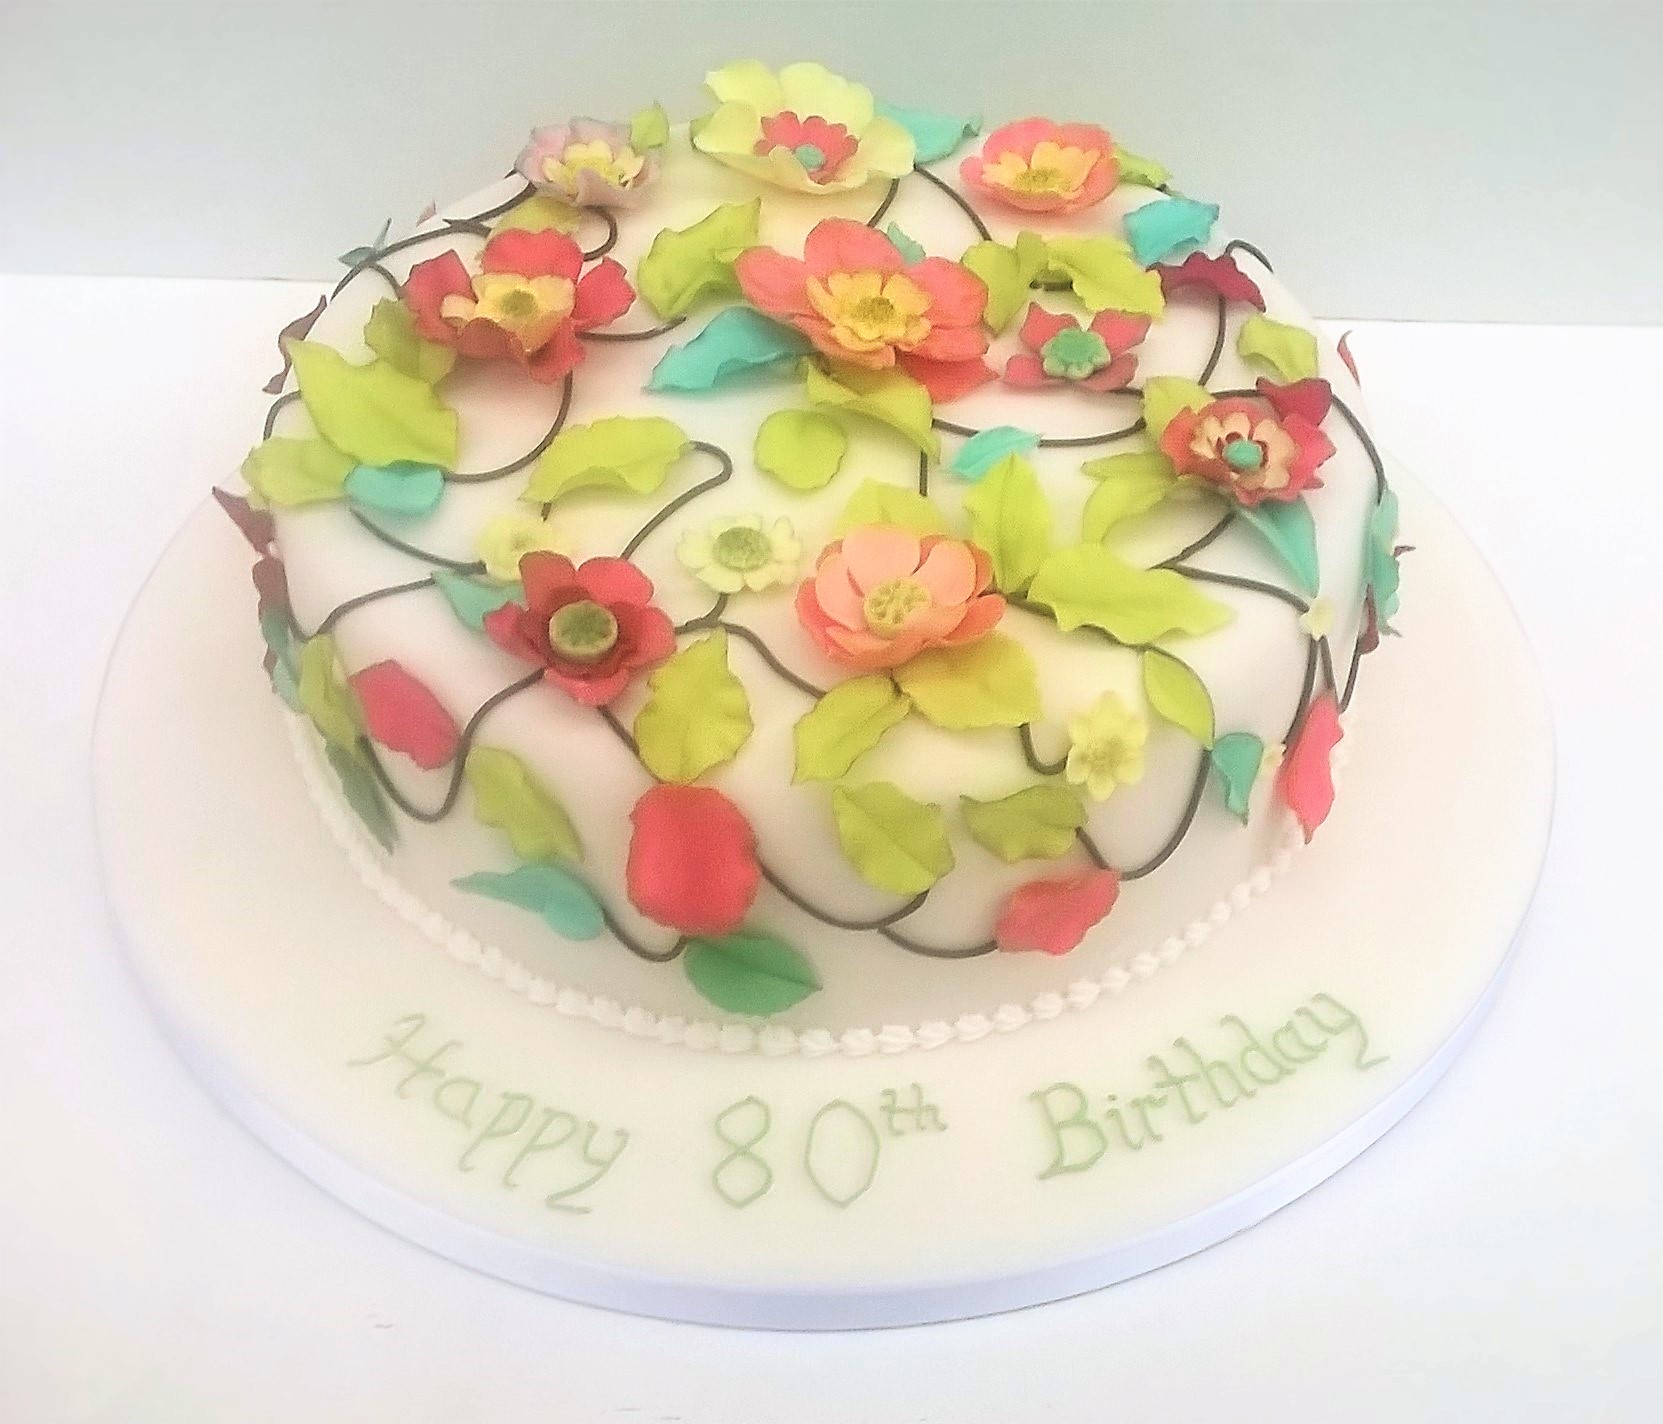 Fantasy Applique Flowers Leaves Birthday Cake By Cocoa Whey Cakes In Winchester